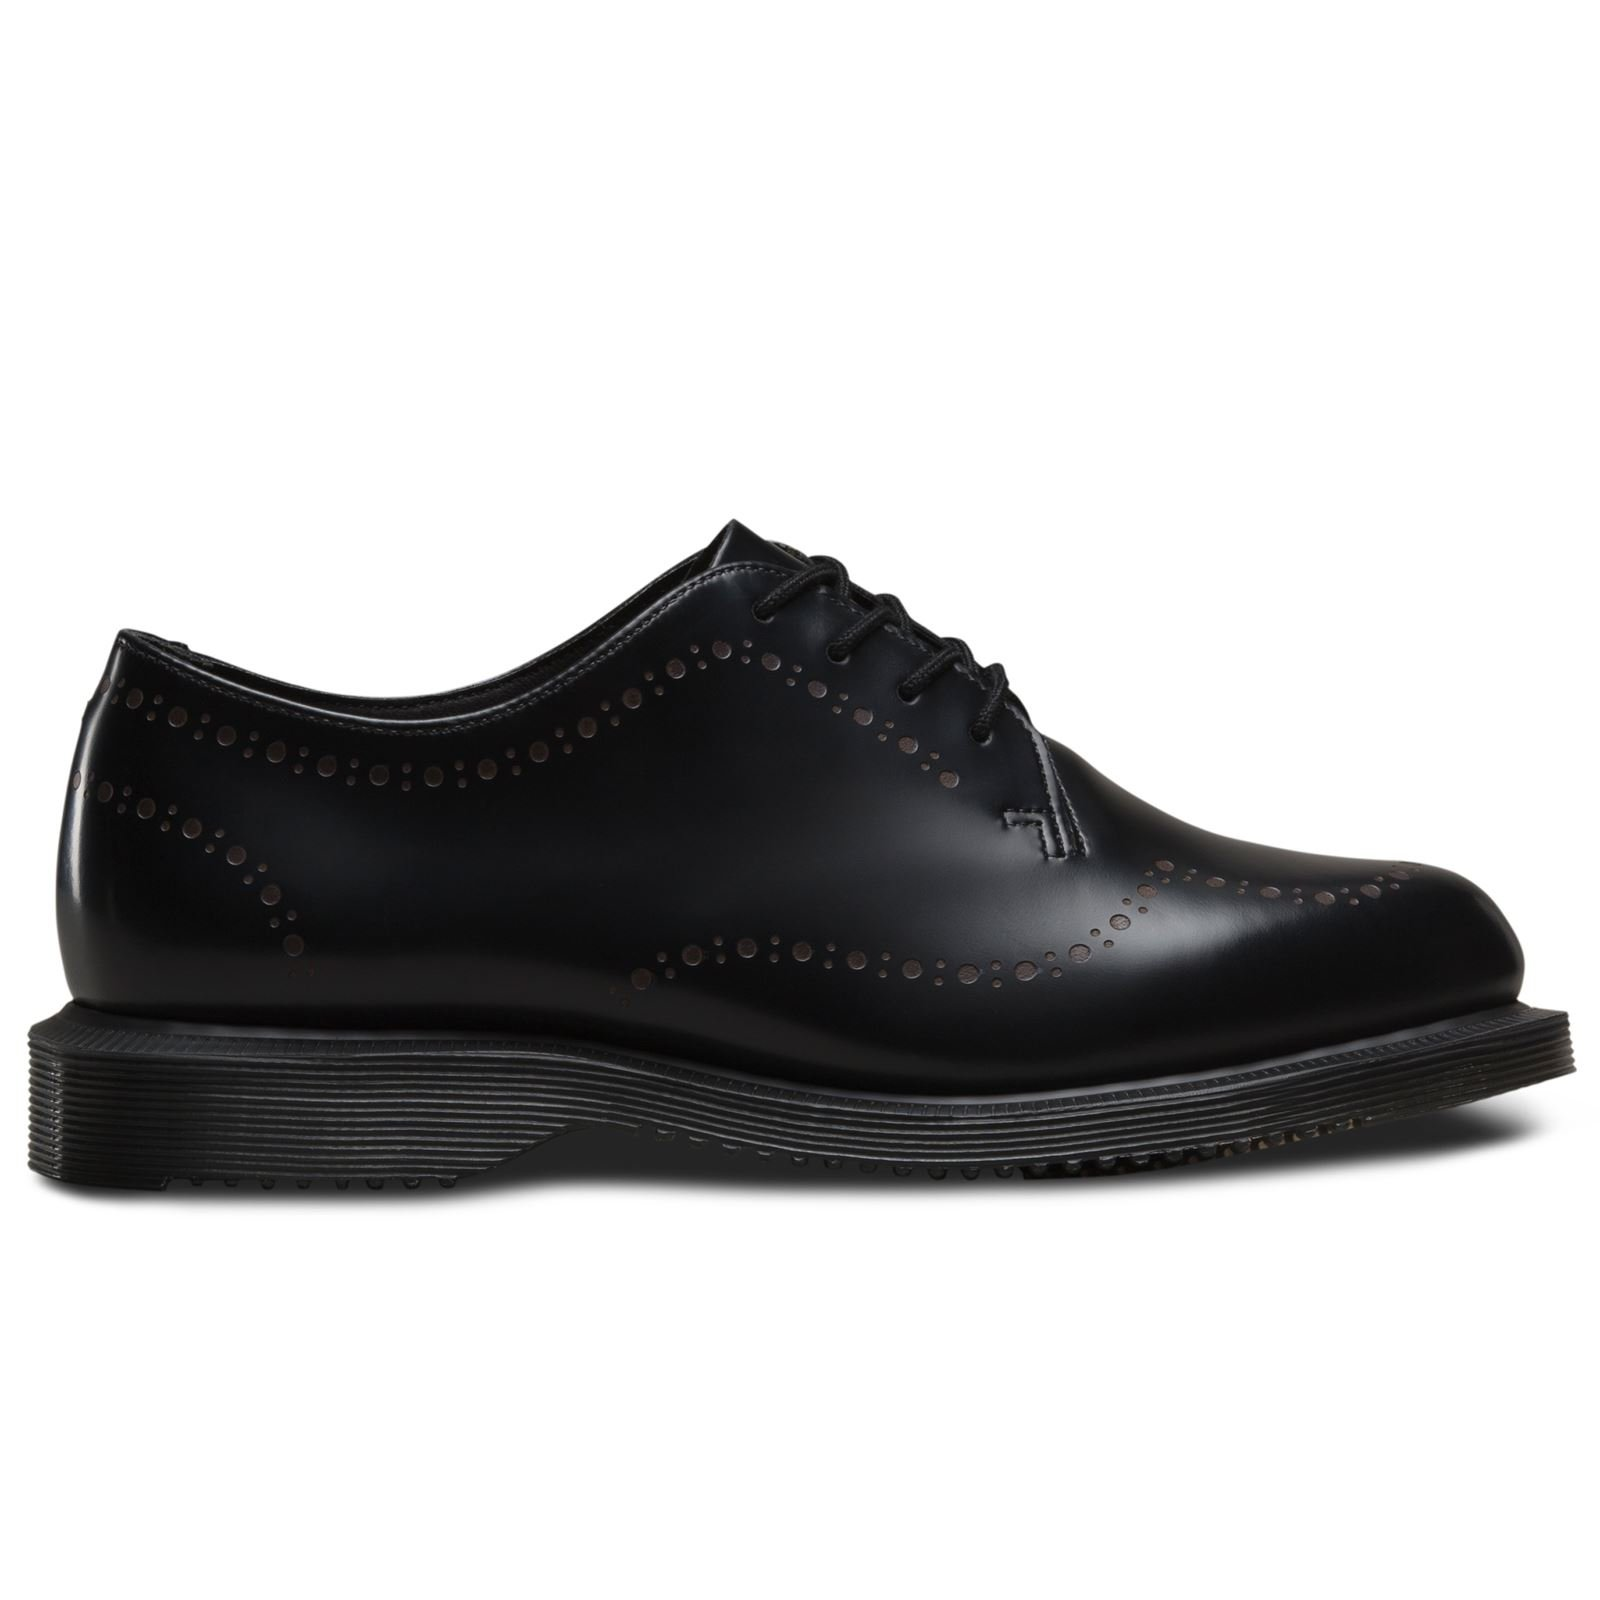 Dr. Martens Women's Charlotte Oxford, black, 5 UK/7 M US